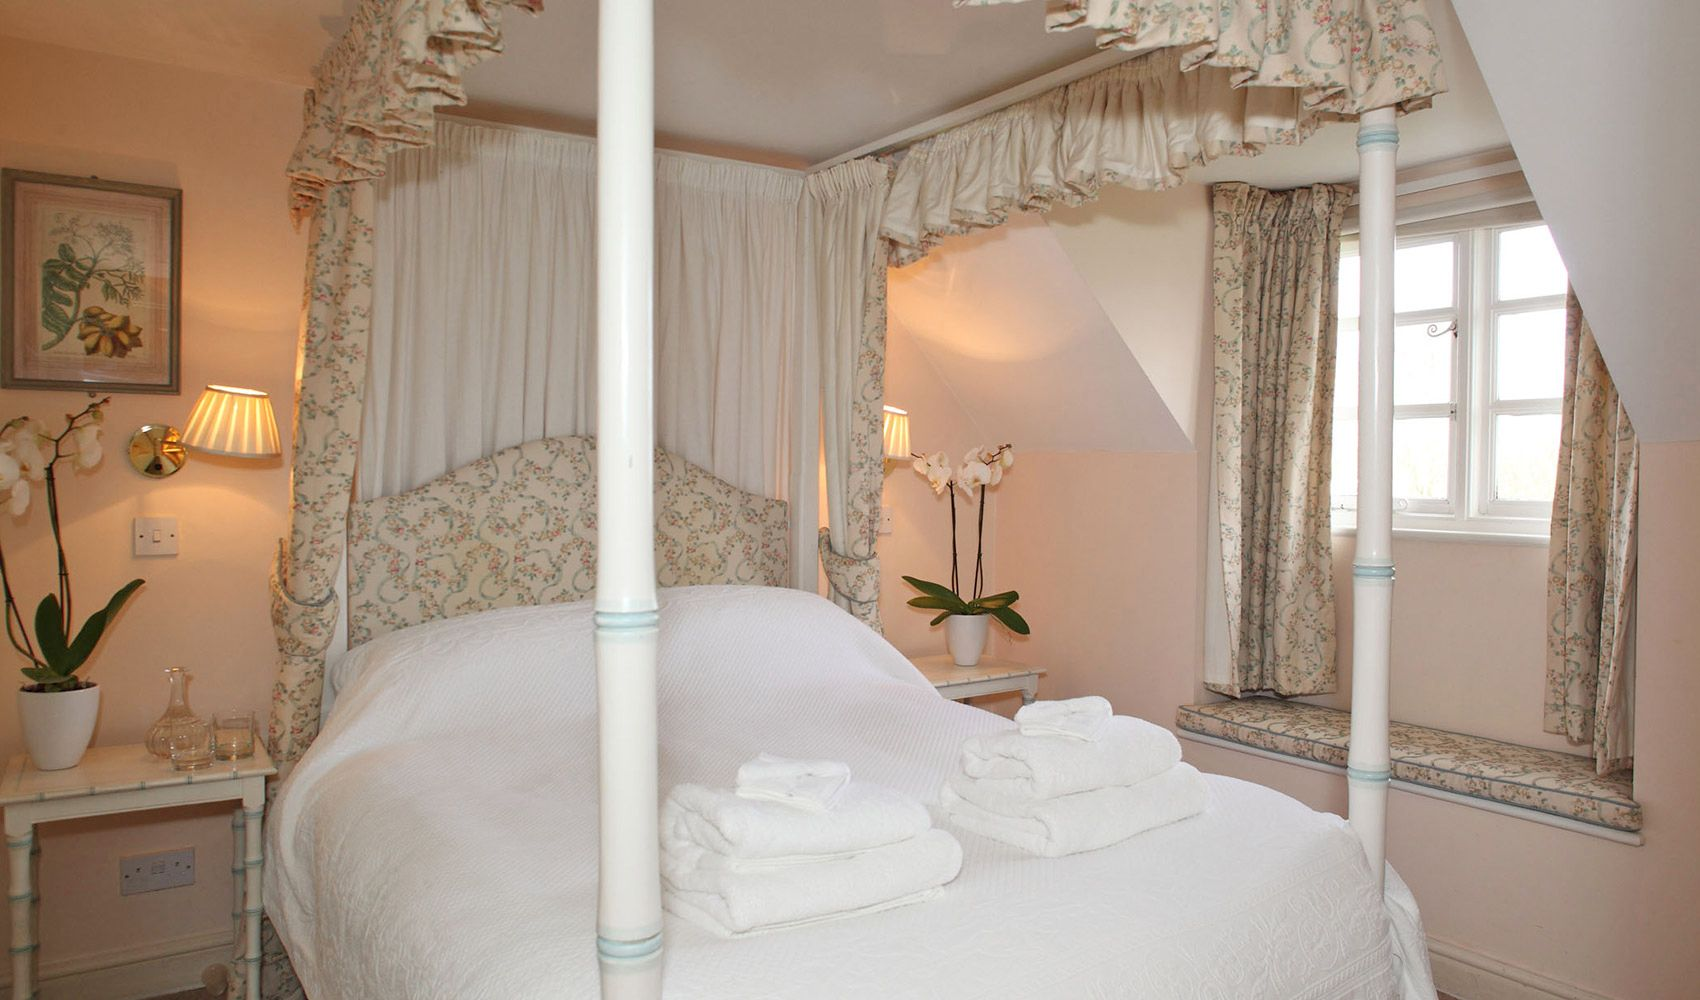 Second floor: Master bedroom with a faux bamboo four-poster bed